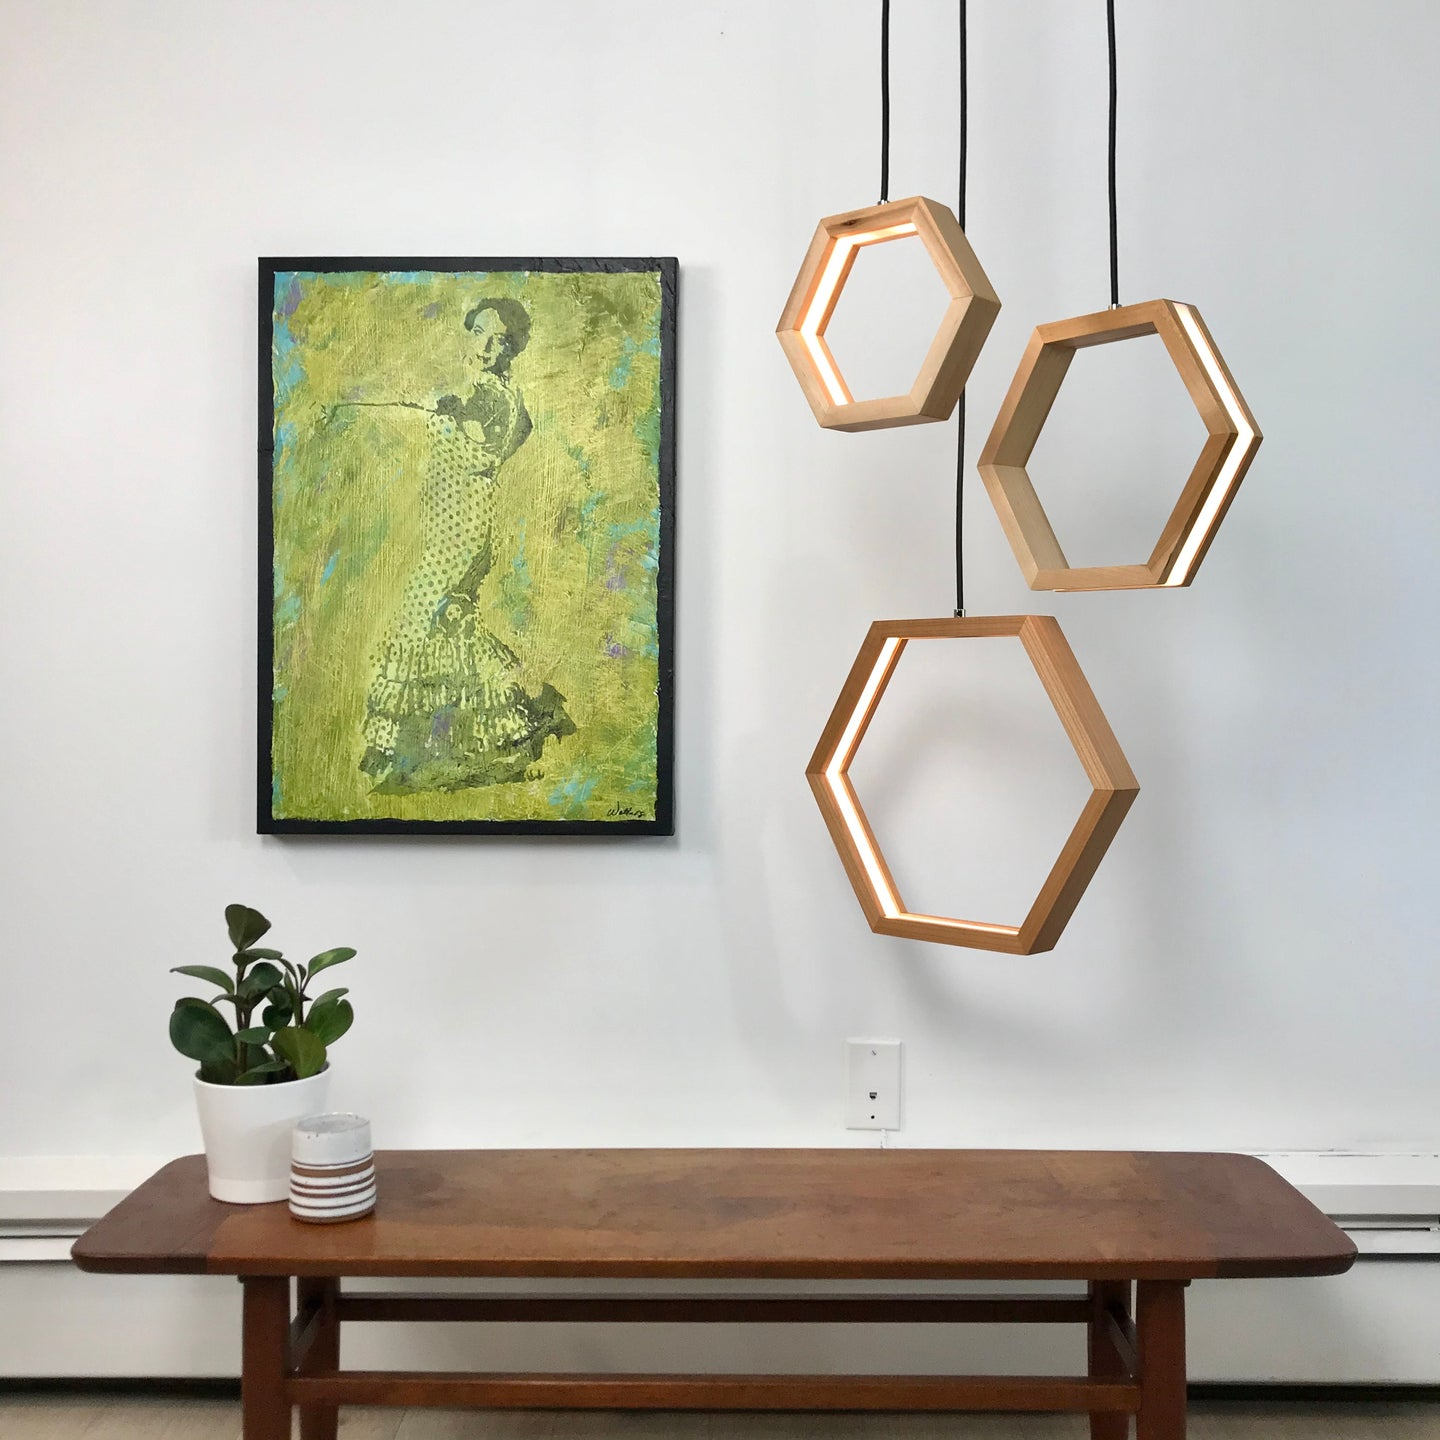 HEXAGON Pendant Lighting Series